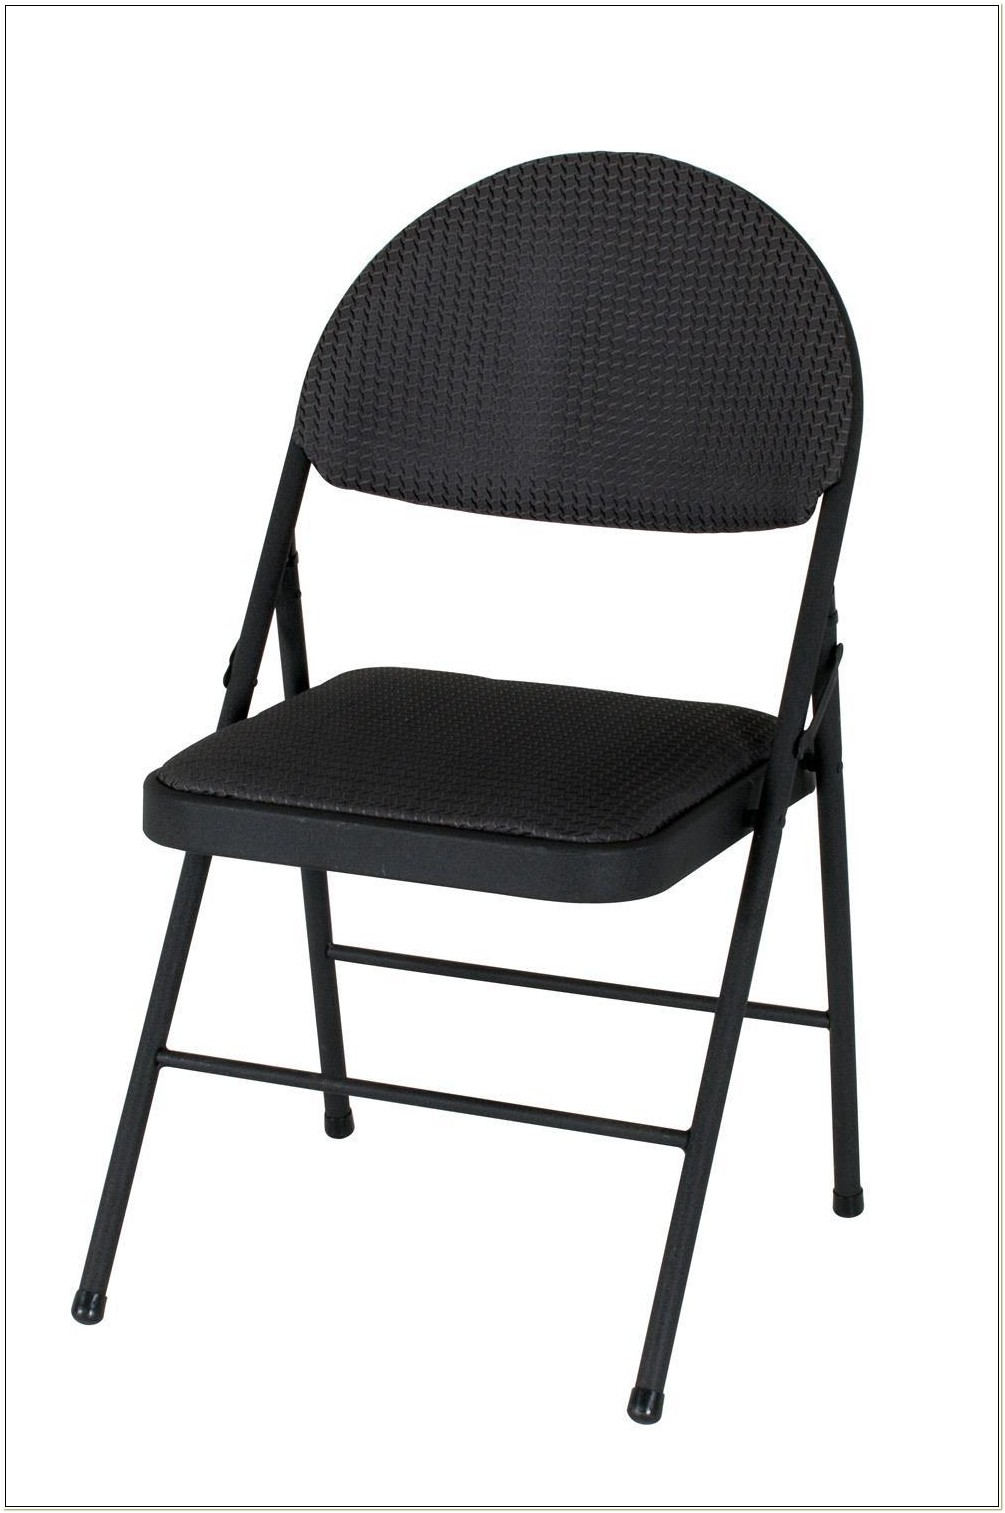 Cosco Comfort Folding Chair